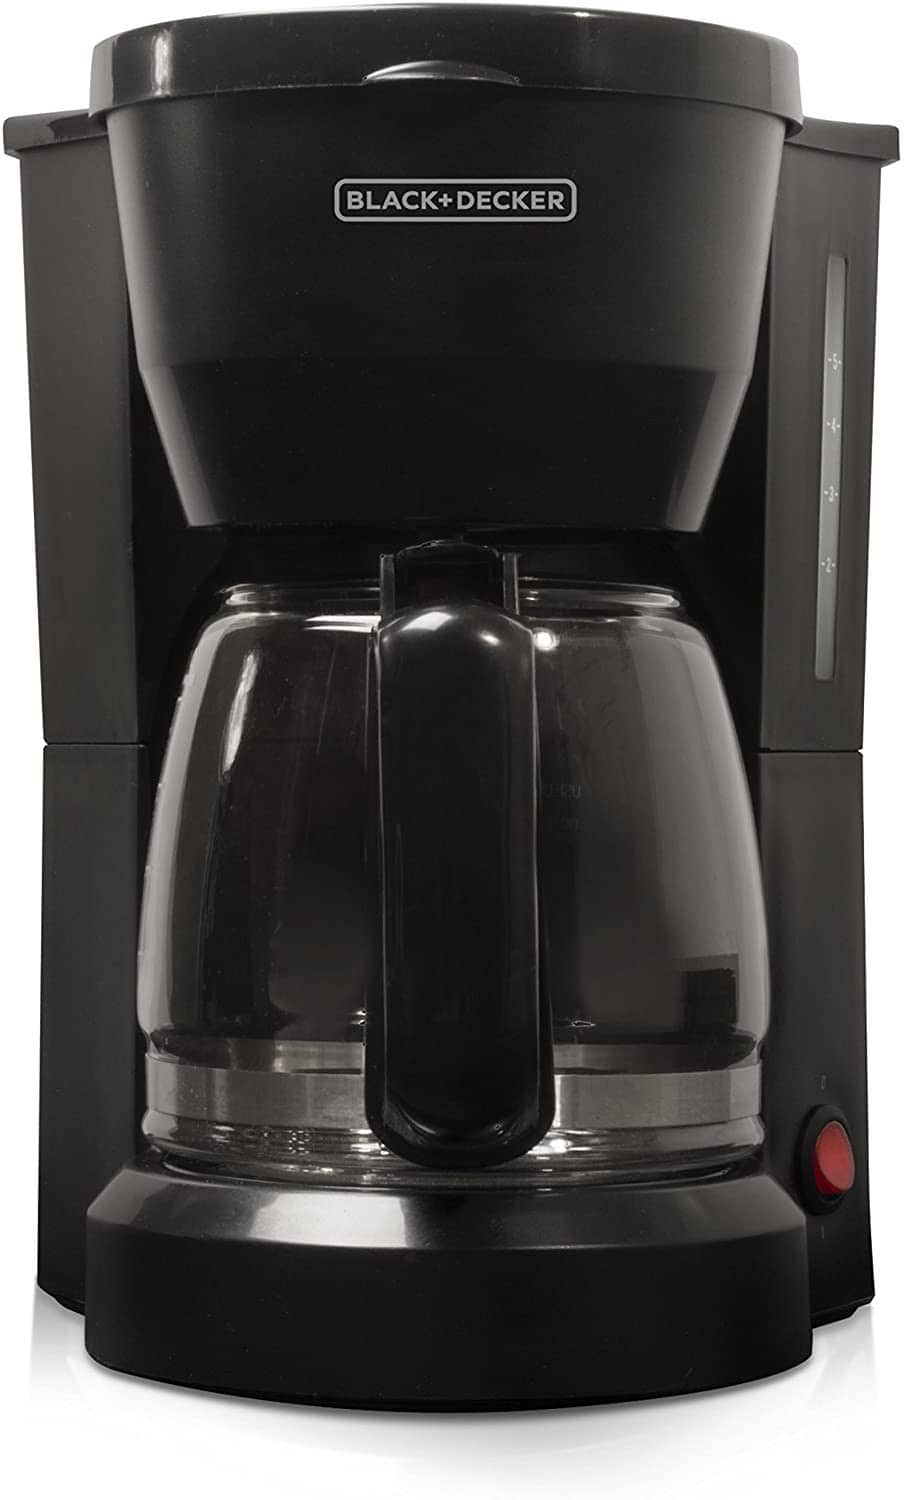 BLACK+DECKER DCM600B 4-Cup Coffee Maker